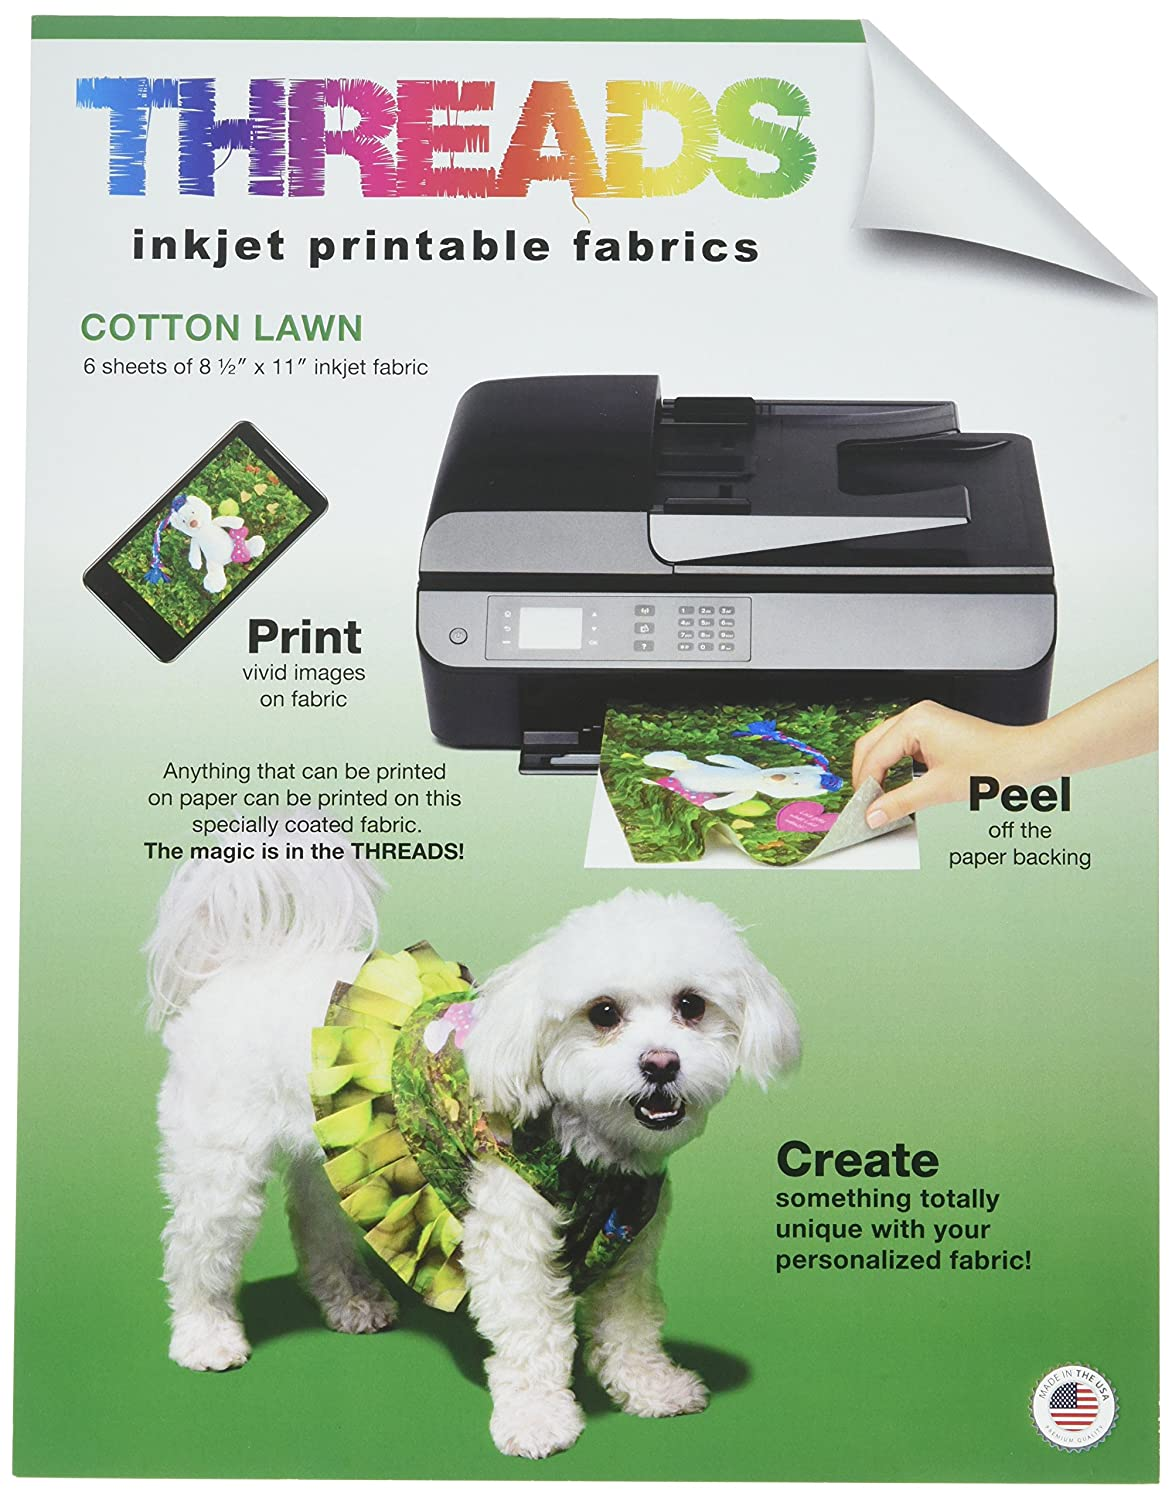 Threads TXIT100620 Inkjet Printable Fabric Sheets, 8.5